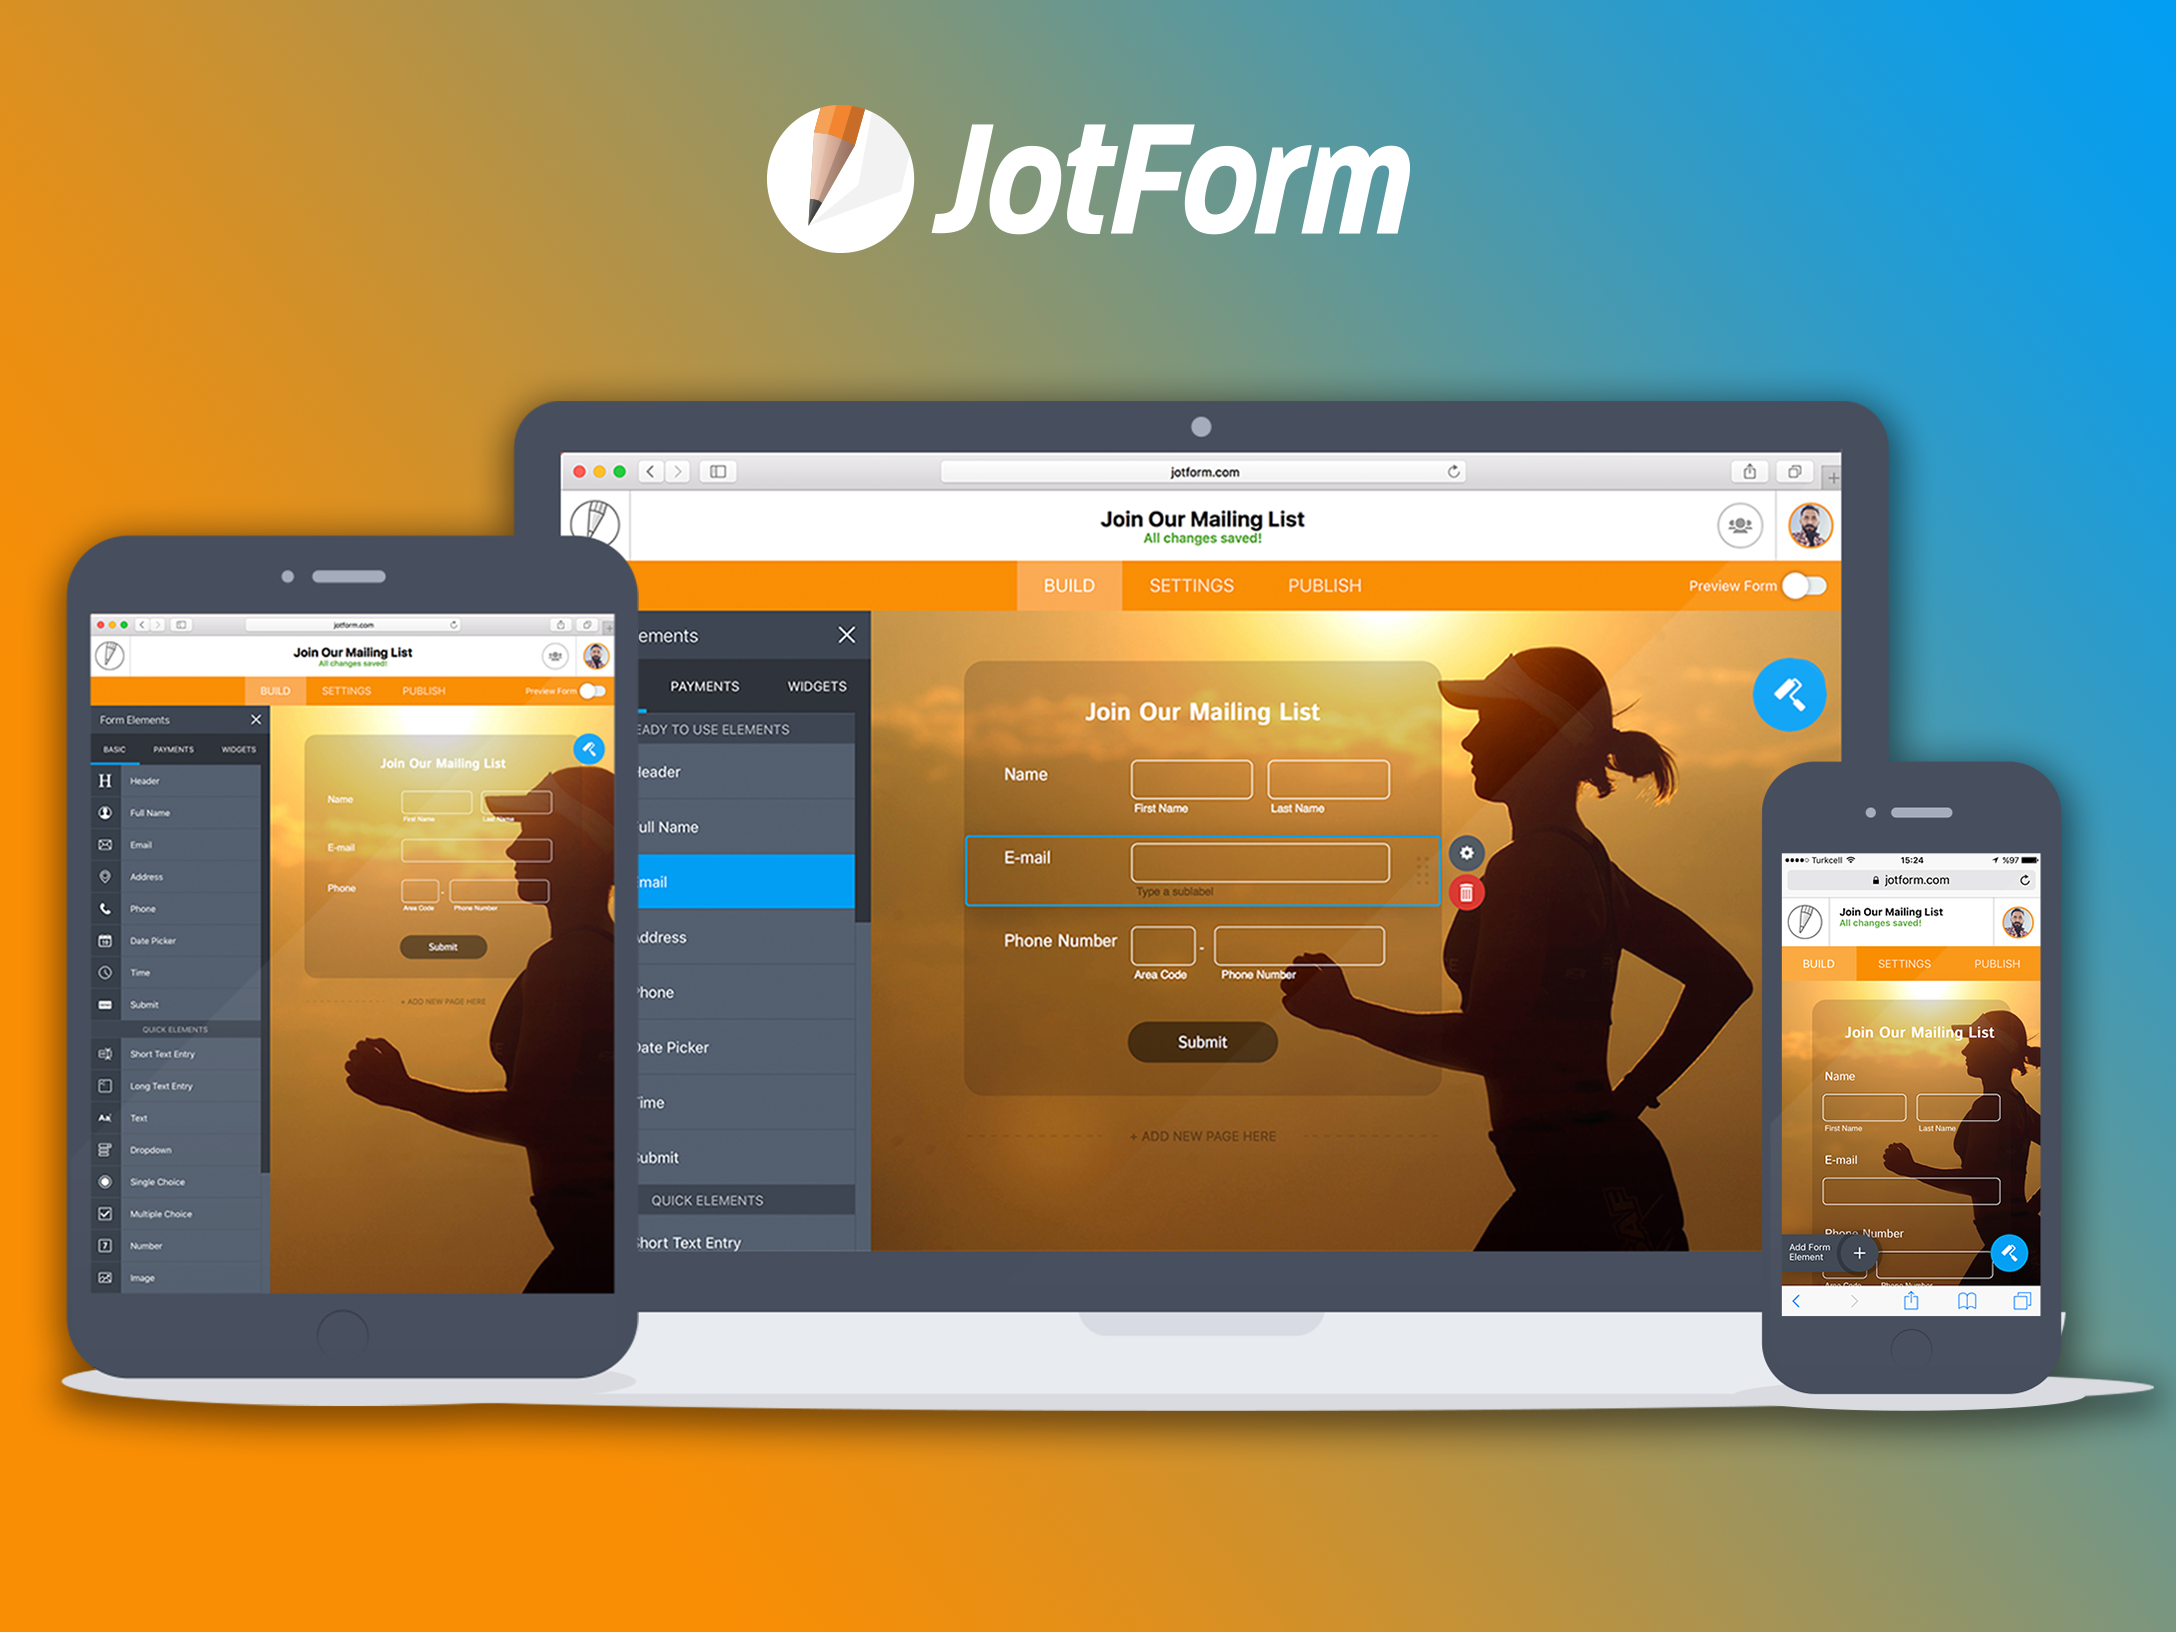 JotForm Demo - Any-device Form Building